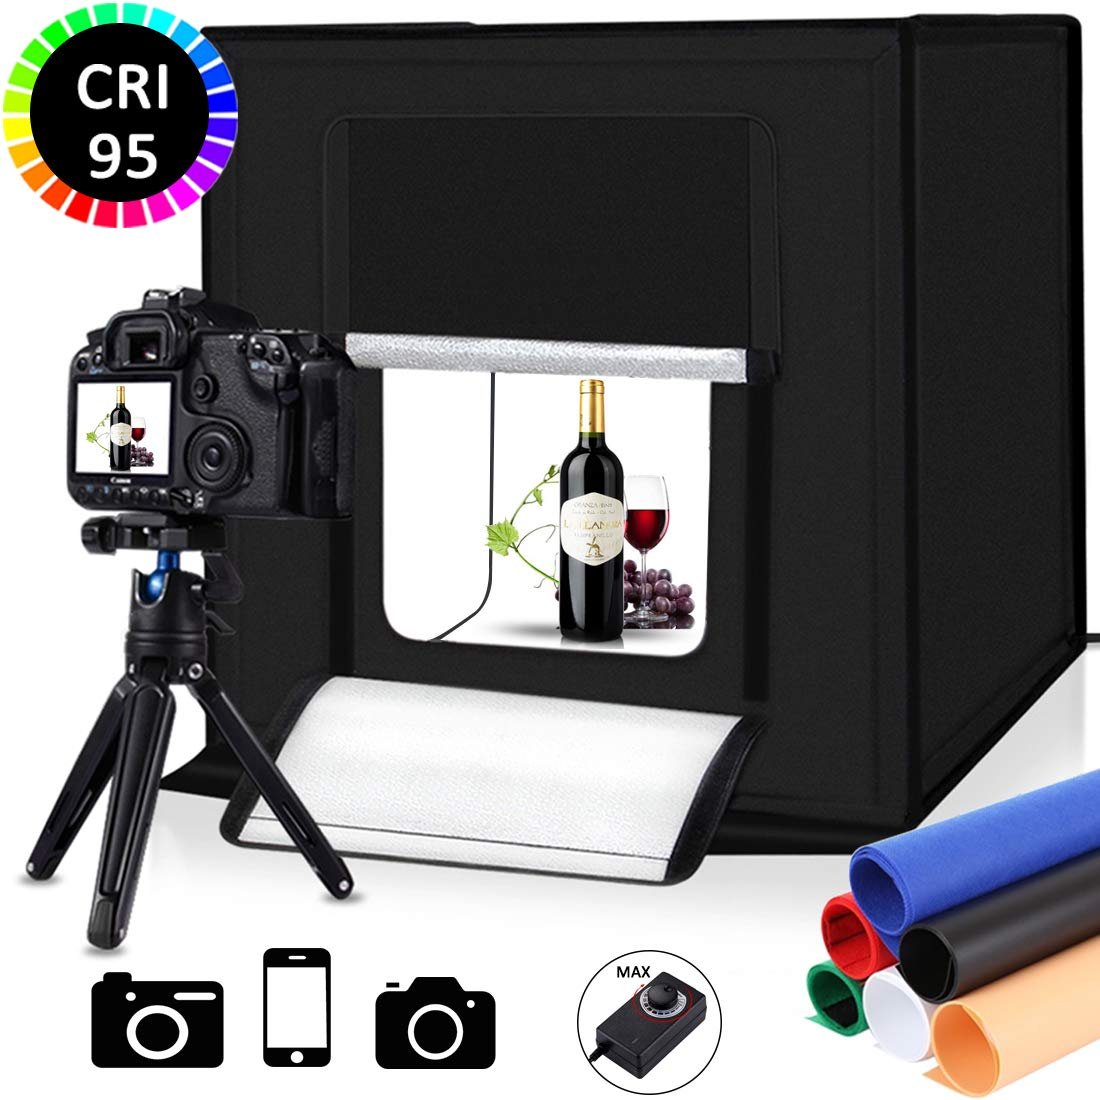 Portable Photo Studio Light Box,16inch Photography Lighting Tent kit,Shooting Lighting Softbox LED 5500k CRI95 & 6 Color Backdrops for Product Display by DUCLUS